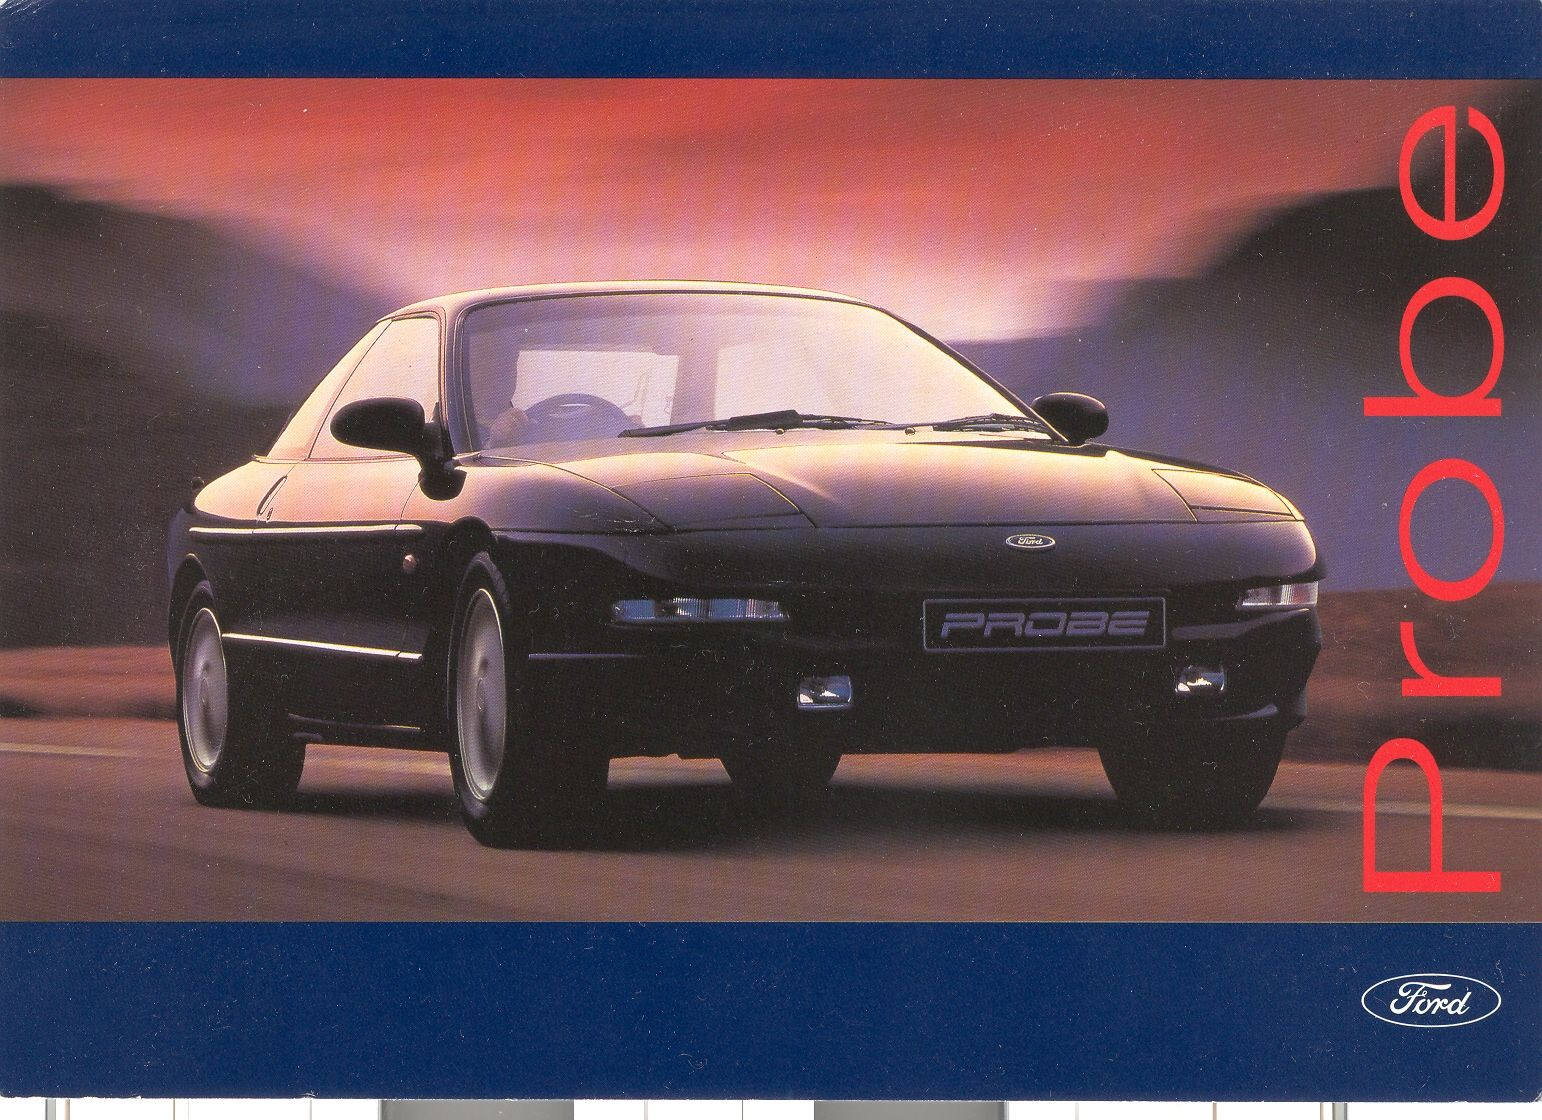 A Post Card From The Launch Of The Ford Probe Not Exactly Hot Though Ford Probe Ford Probe Ford Automotive Art